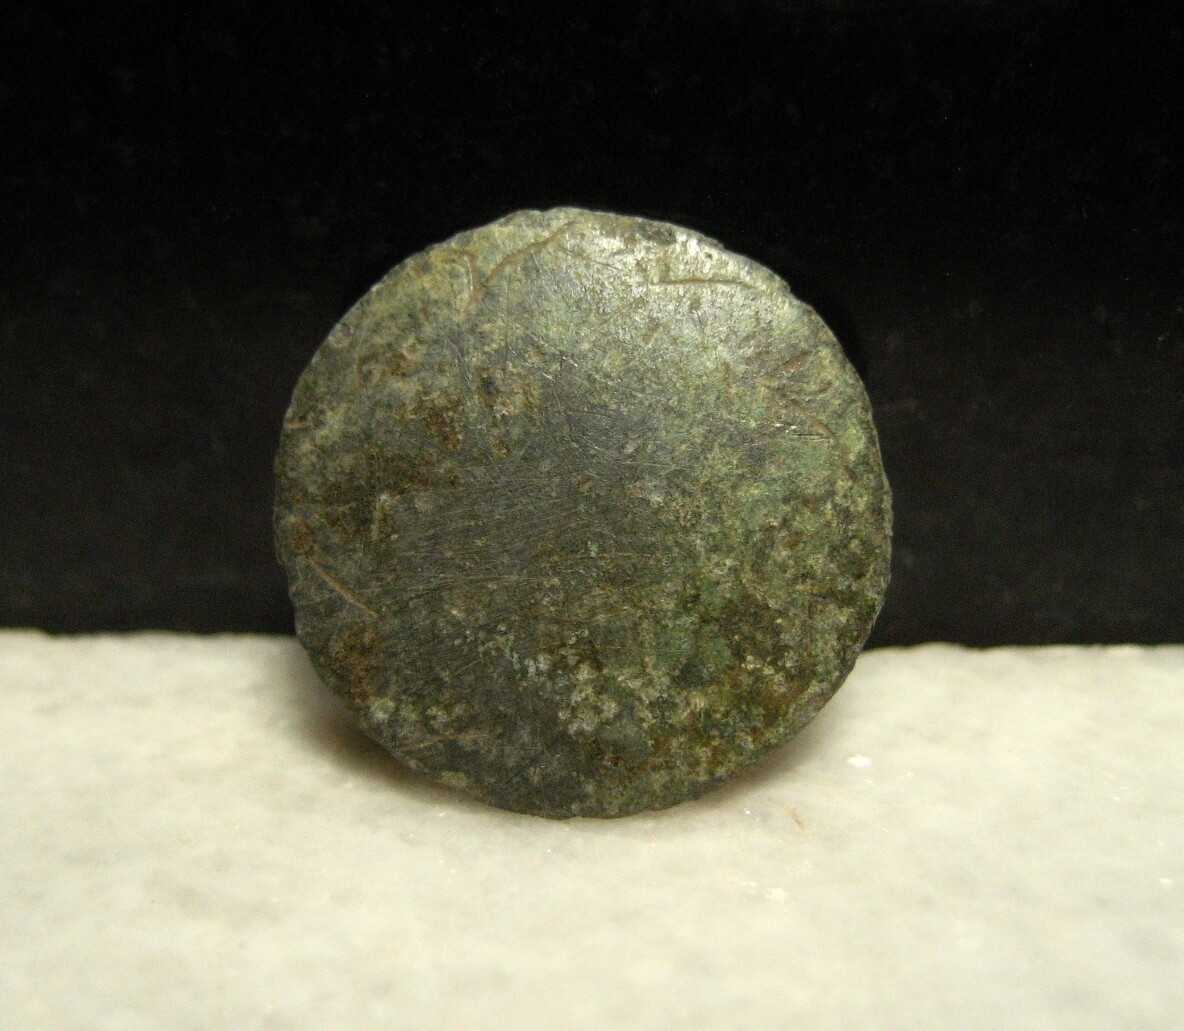 JUST ADDED ON 12/11 - THE BATTLE OF SPOTSYLVANIA - Nice Flat/Coin Button